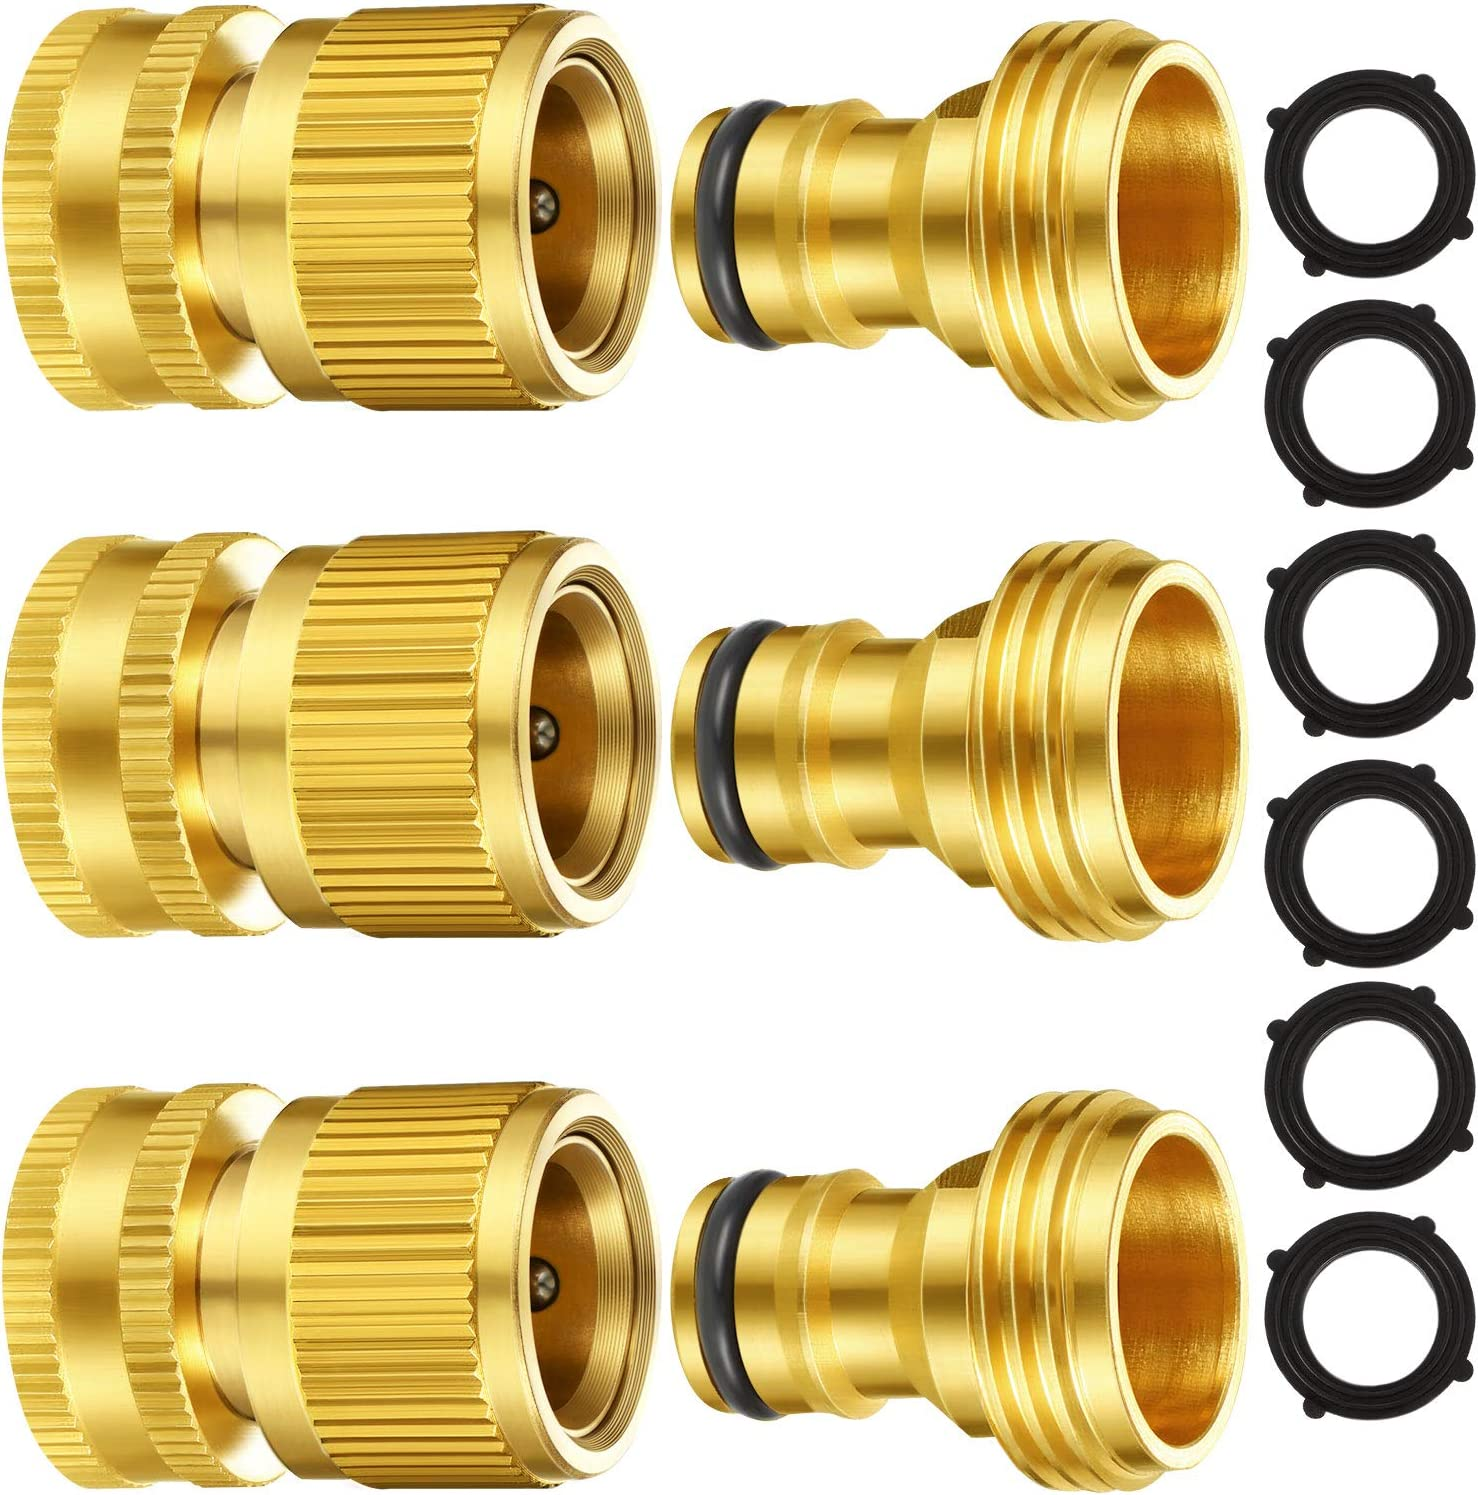 Garden Hose Quick Connect Fittings Solid Brass Quick Connector 3/4 Inch GHT Garden Water Hose Connectors with Extra Rubber Washers, Male and Female (3 Set)